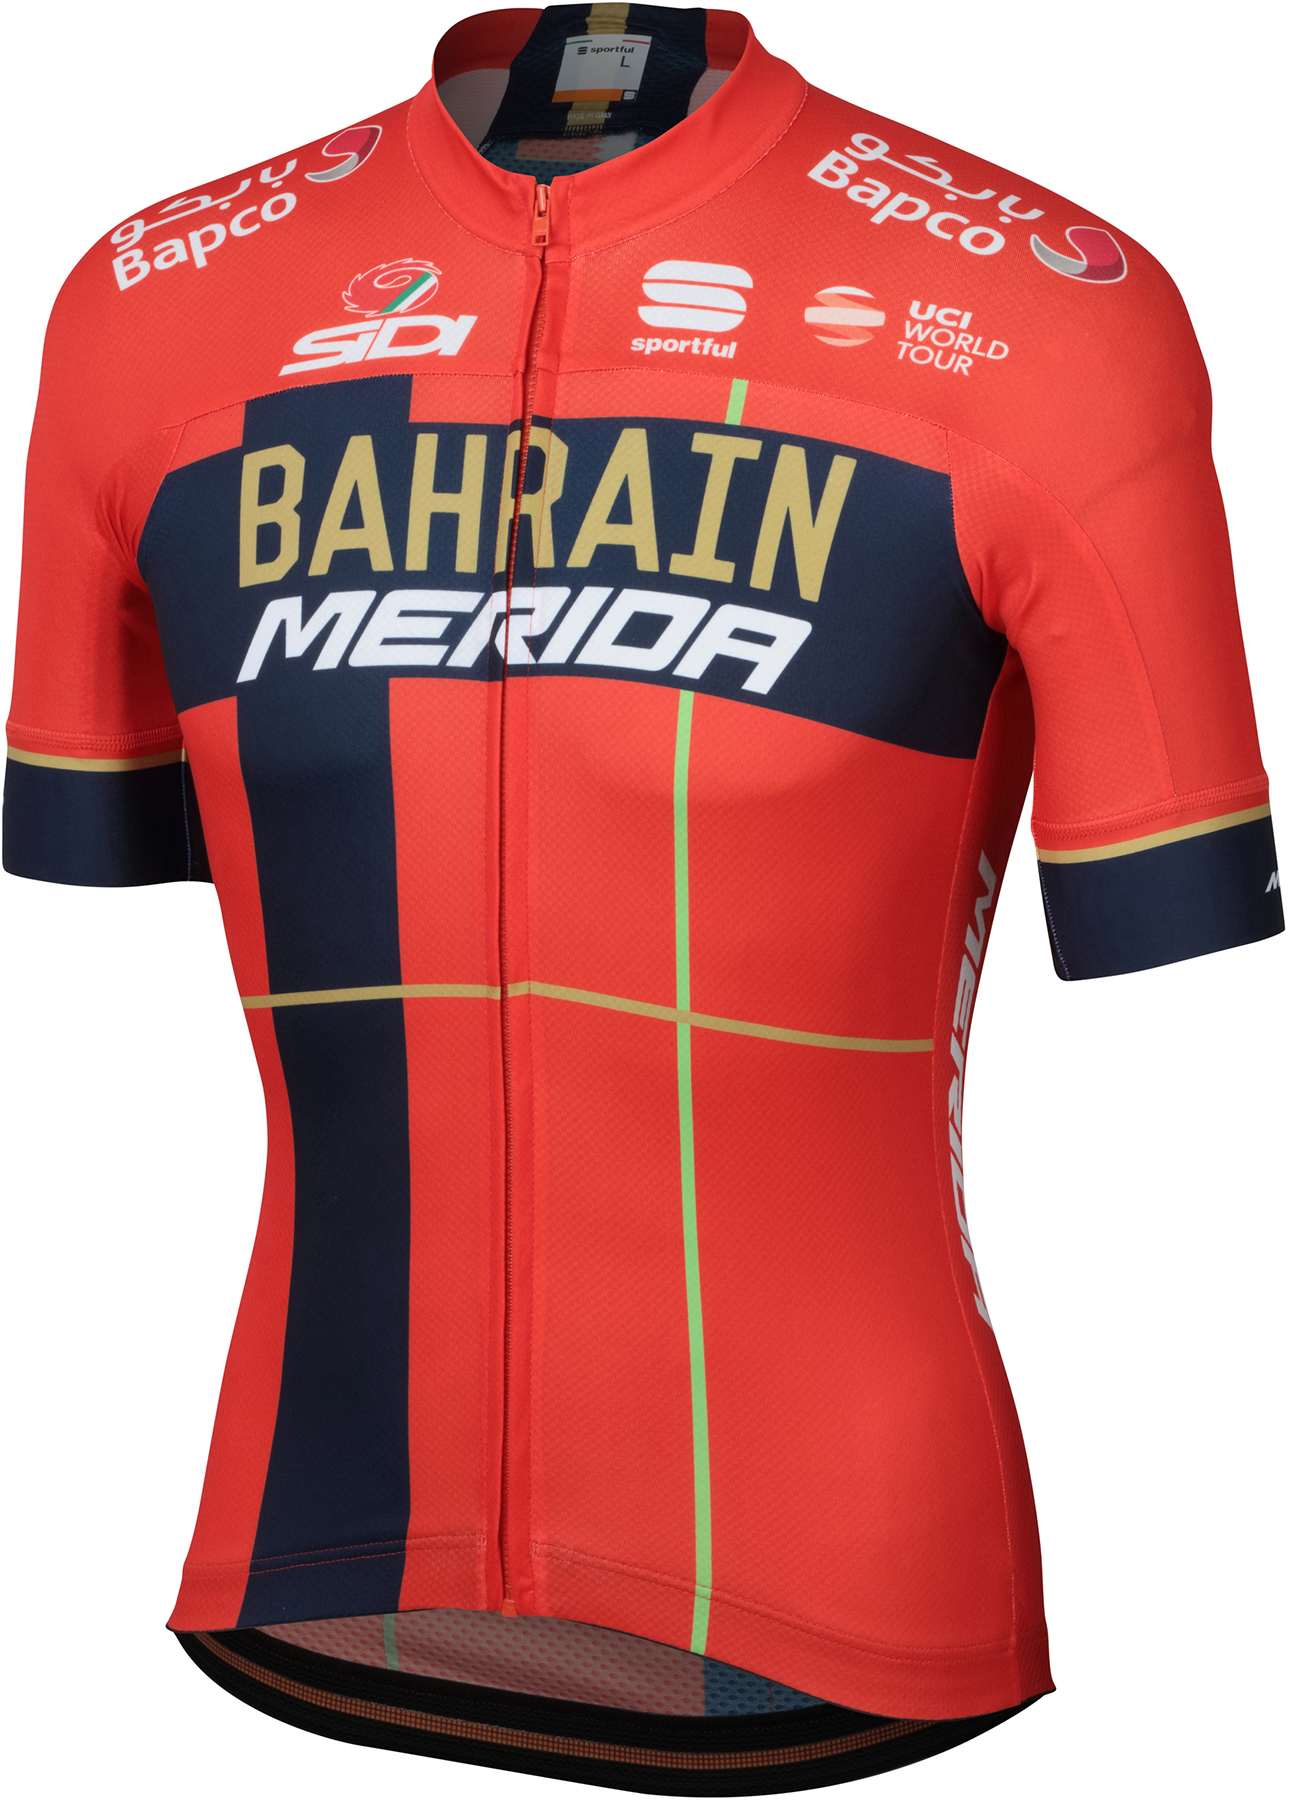 Sportful Bahrain Merida BodyFit Team Jersey | Jerseys